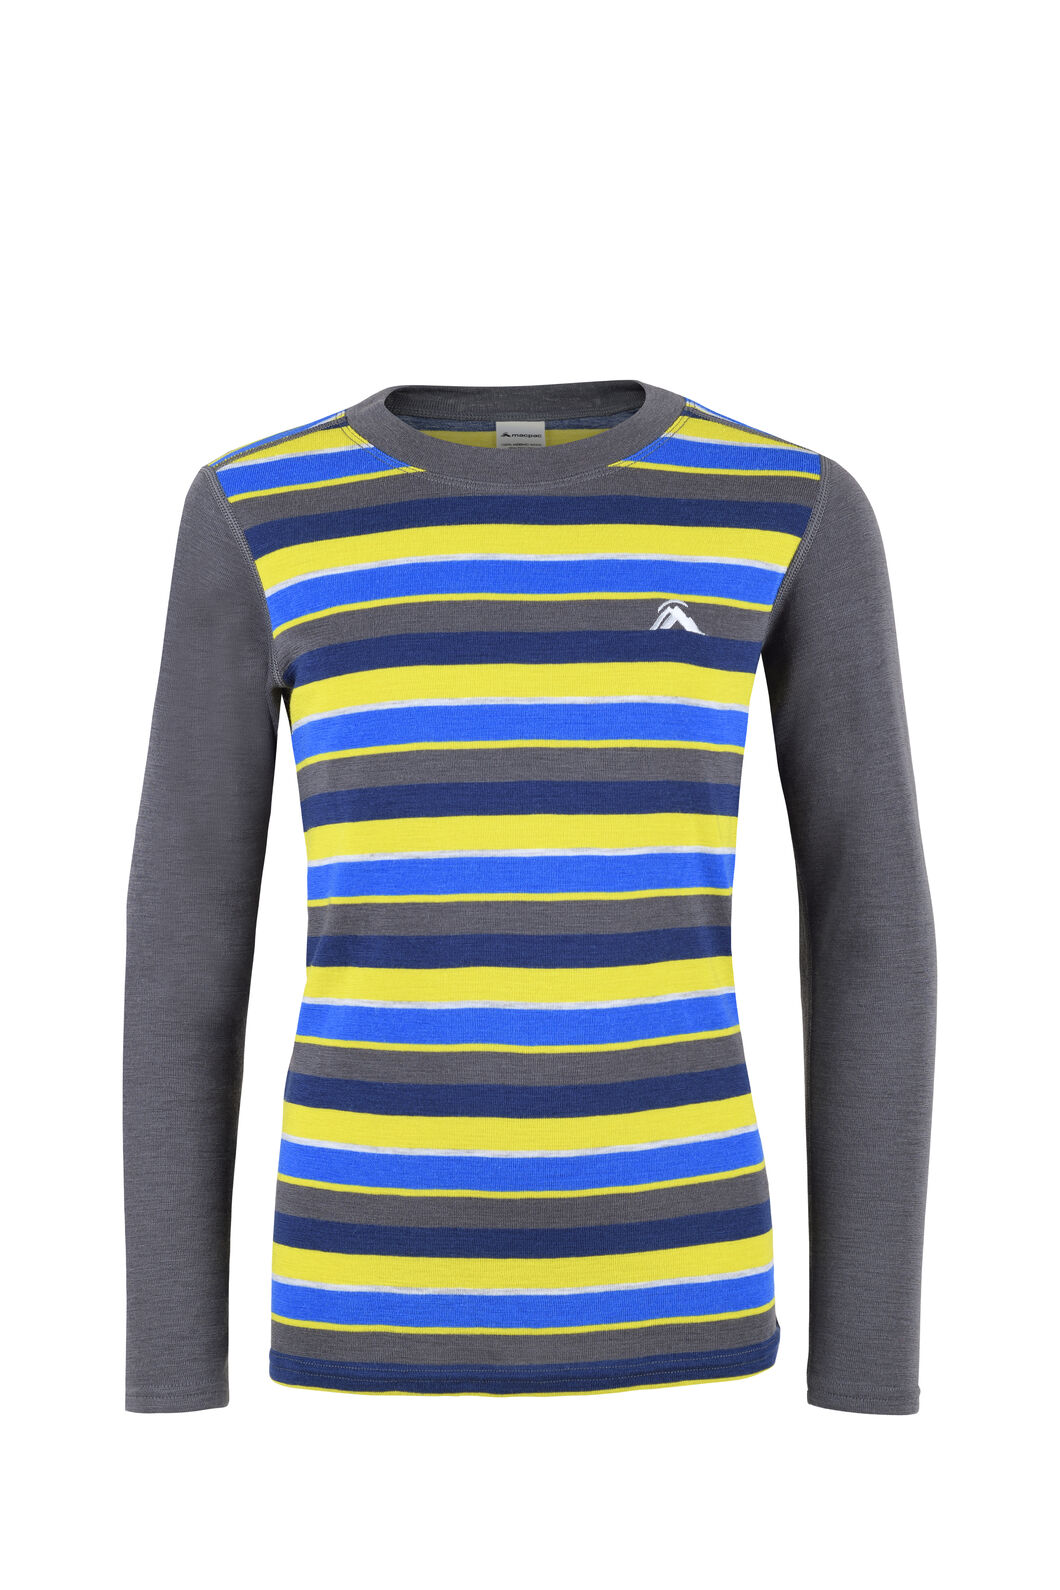 Macpac 220 Merino Long Sleeve Top - Kids', Blue Depths Stripe, hi-res